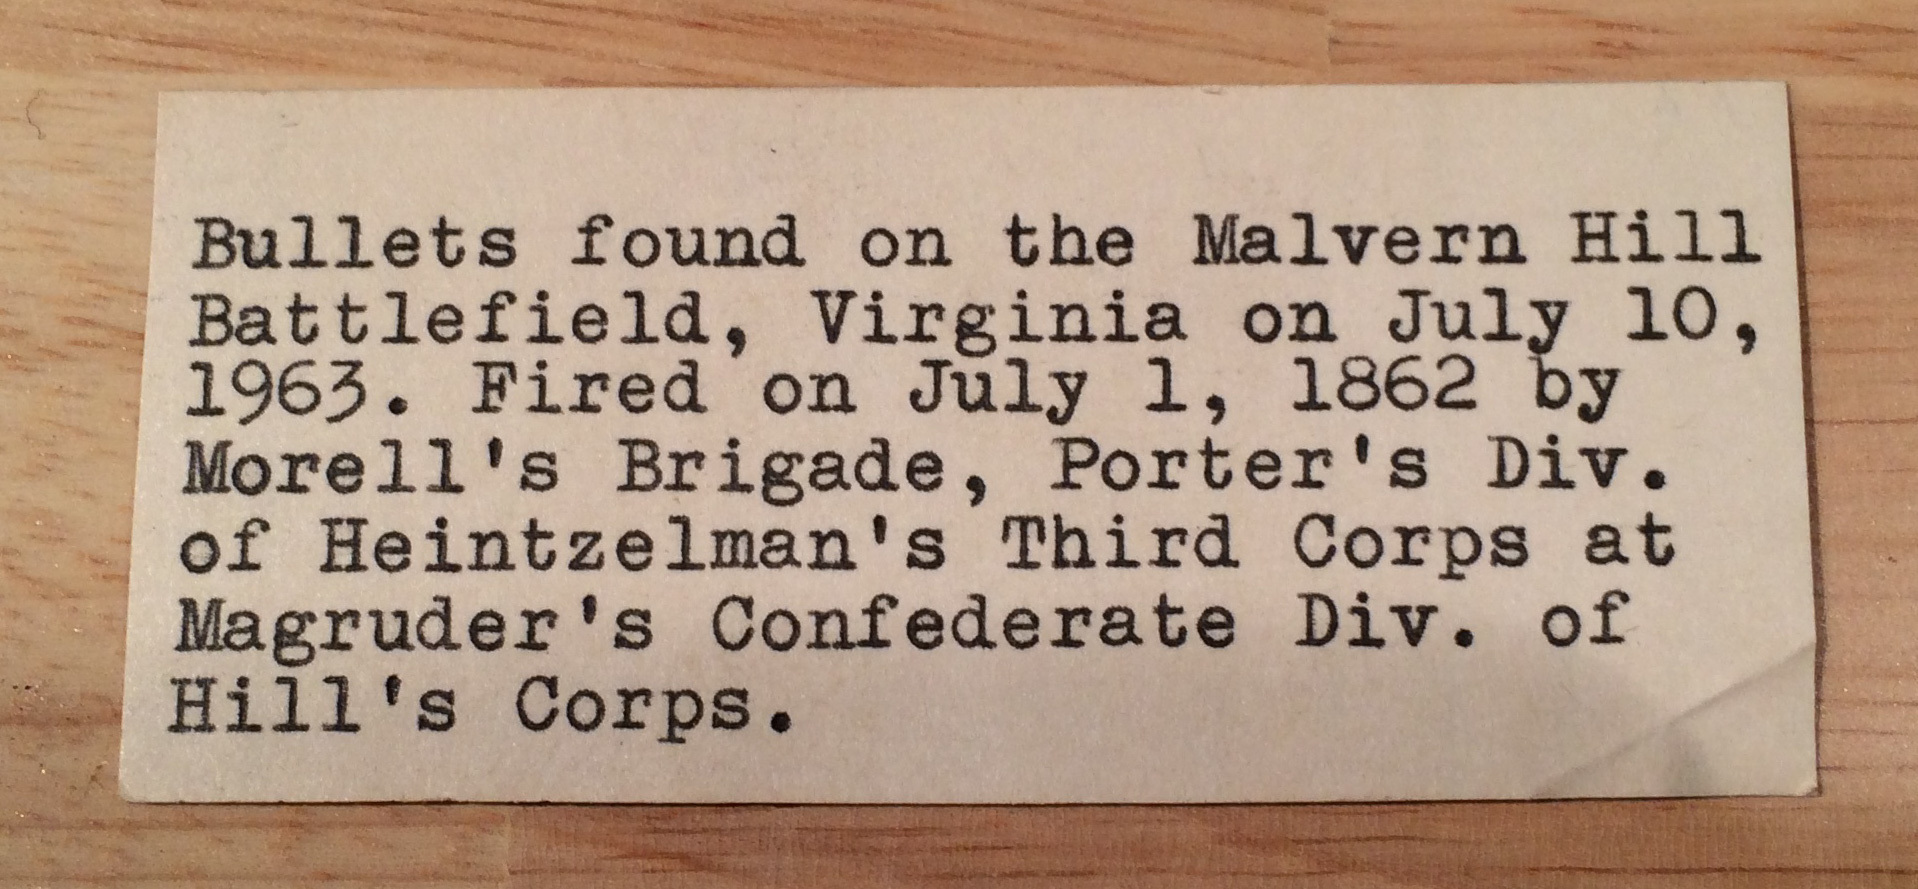 JUST ADDED ON 1/19 - THE BATTLE OF MALVERN HILL / AREA OF MAGRUDER'S ADVANCE - Fired Confederate Gardner Bullet  - Found July 10, 1963